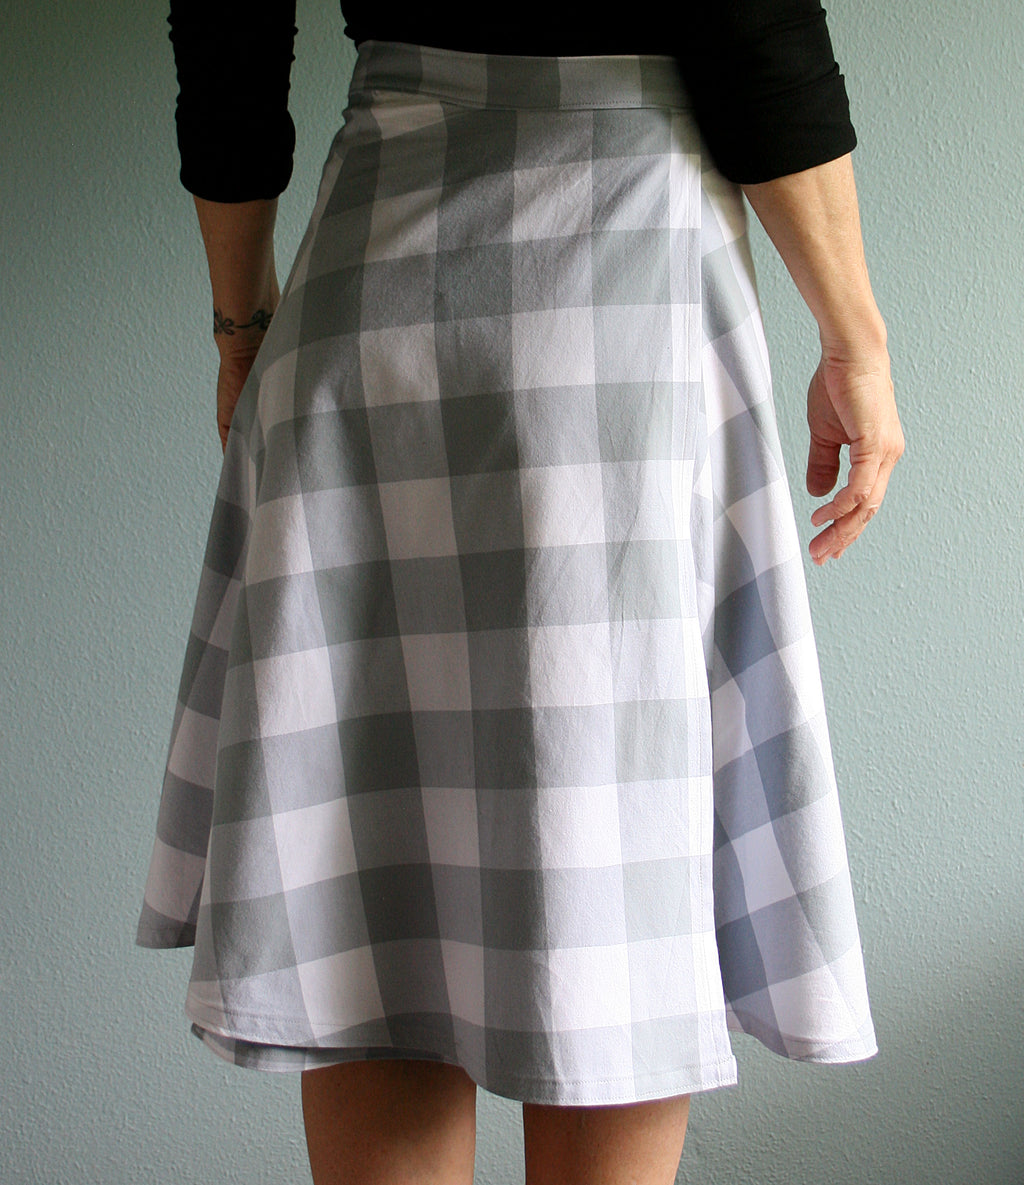 Wrap skirt with century plant agave on soft blue checks